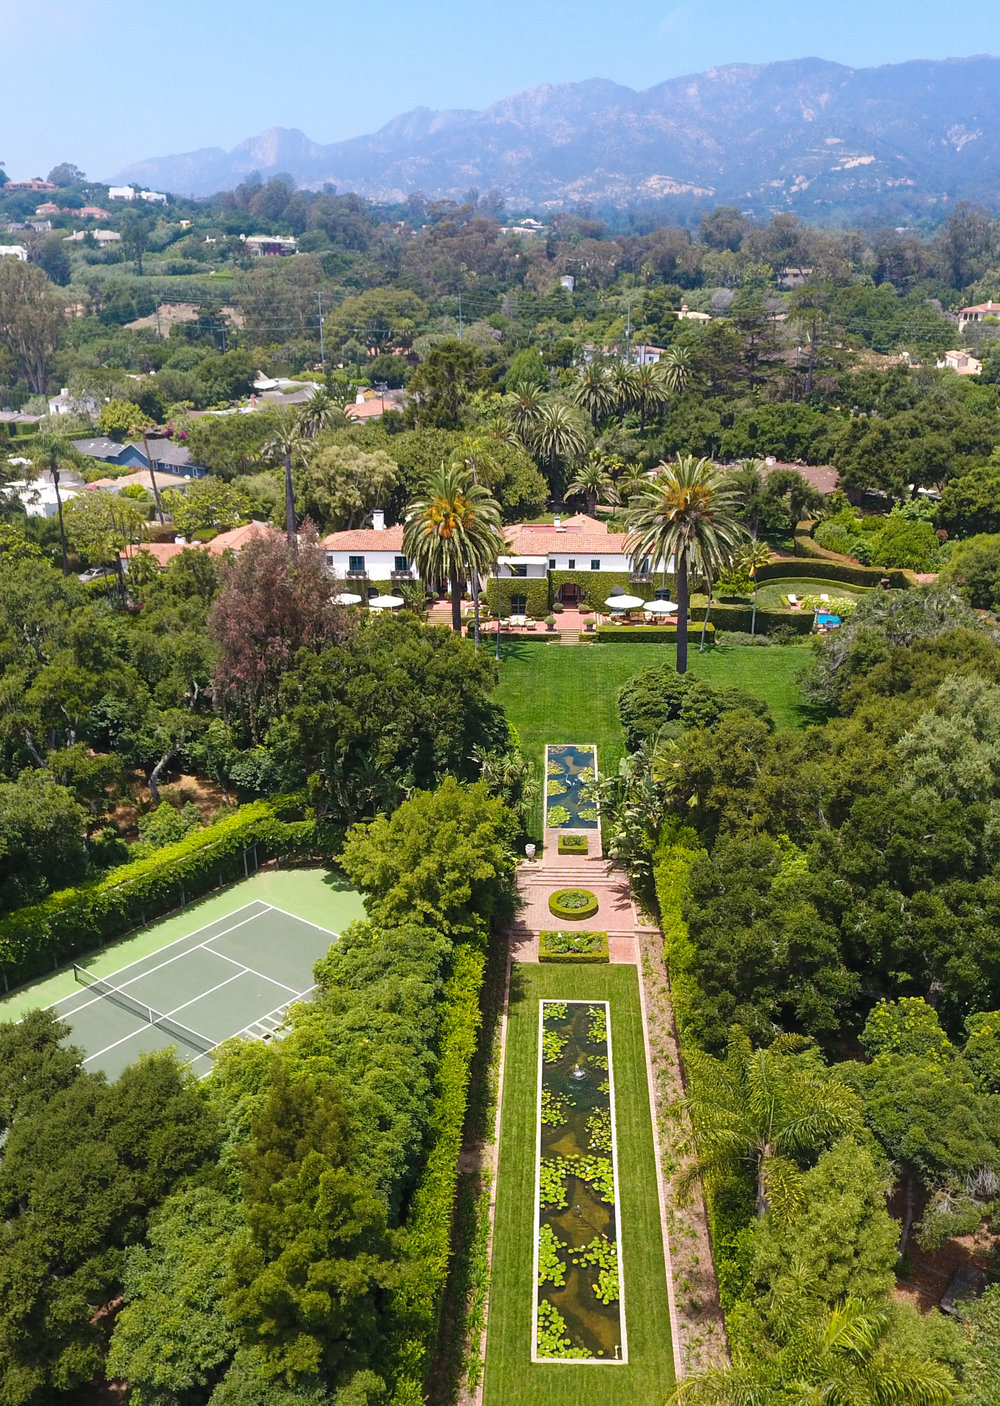 Property for sale El Cielito, Montecito List Price: $19,950,000